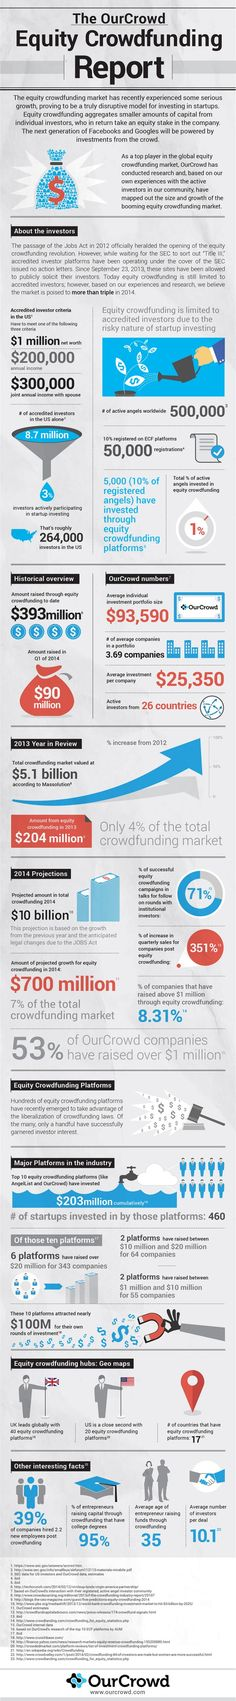 OurCrowd Infographic: Equity Crowdfunding In 2014 & Beyond - Crowdfund Insider